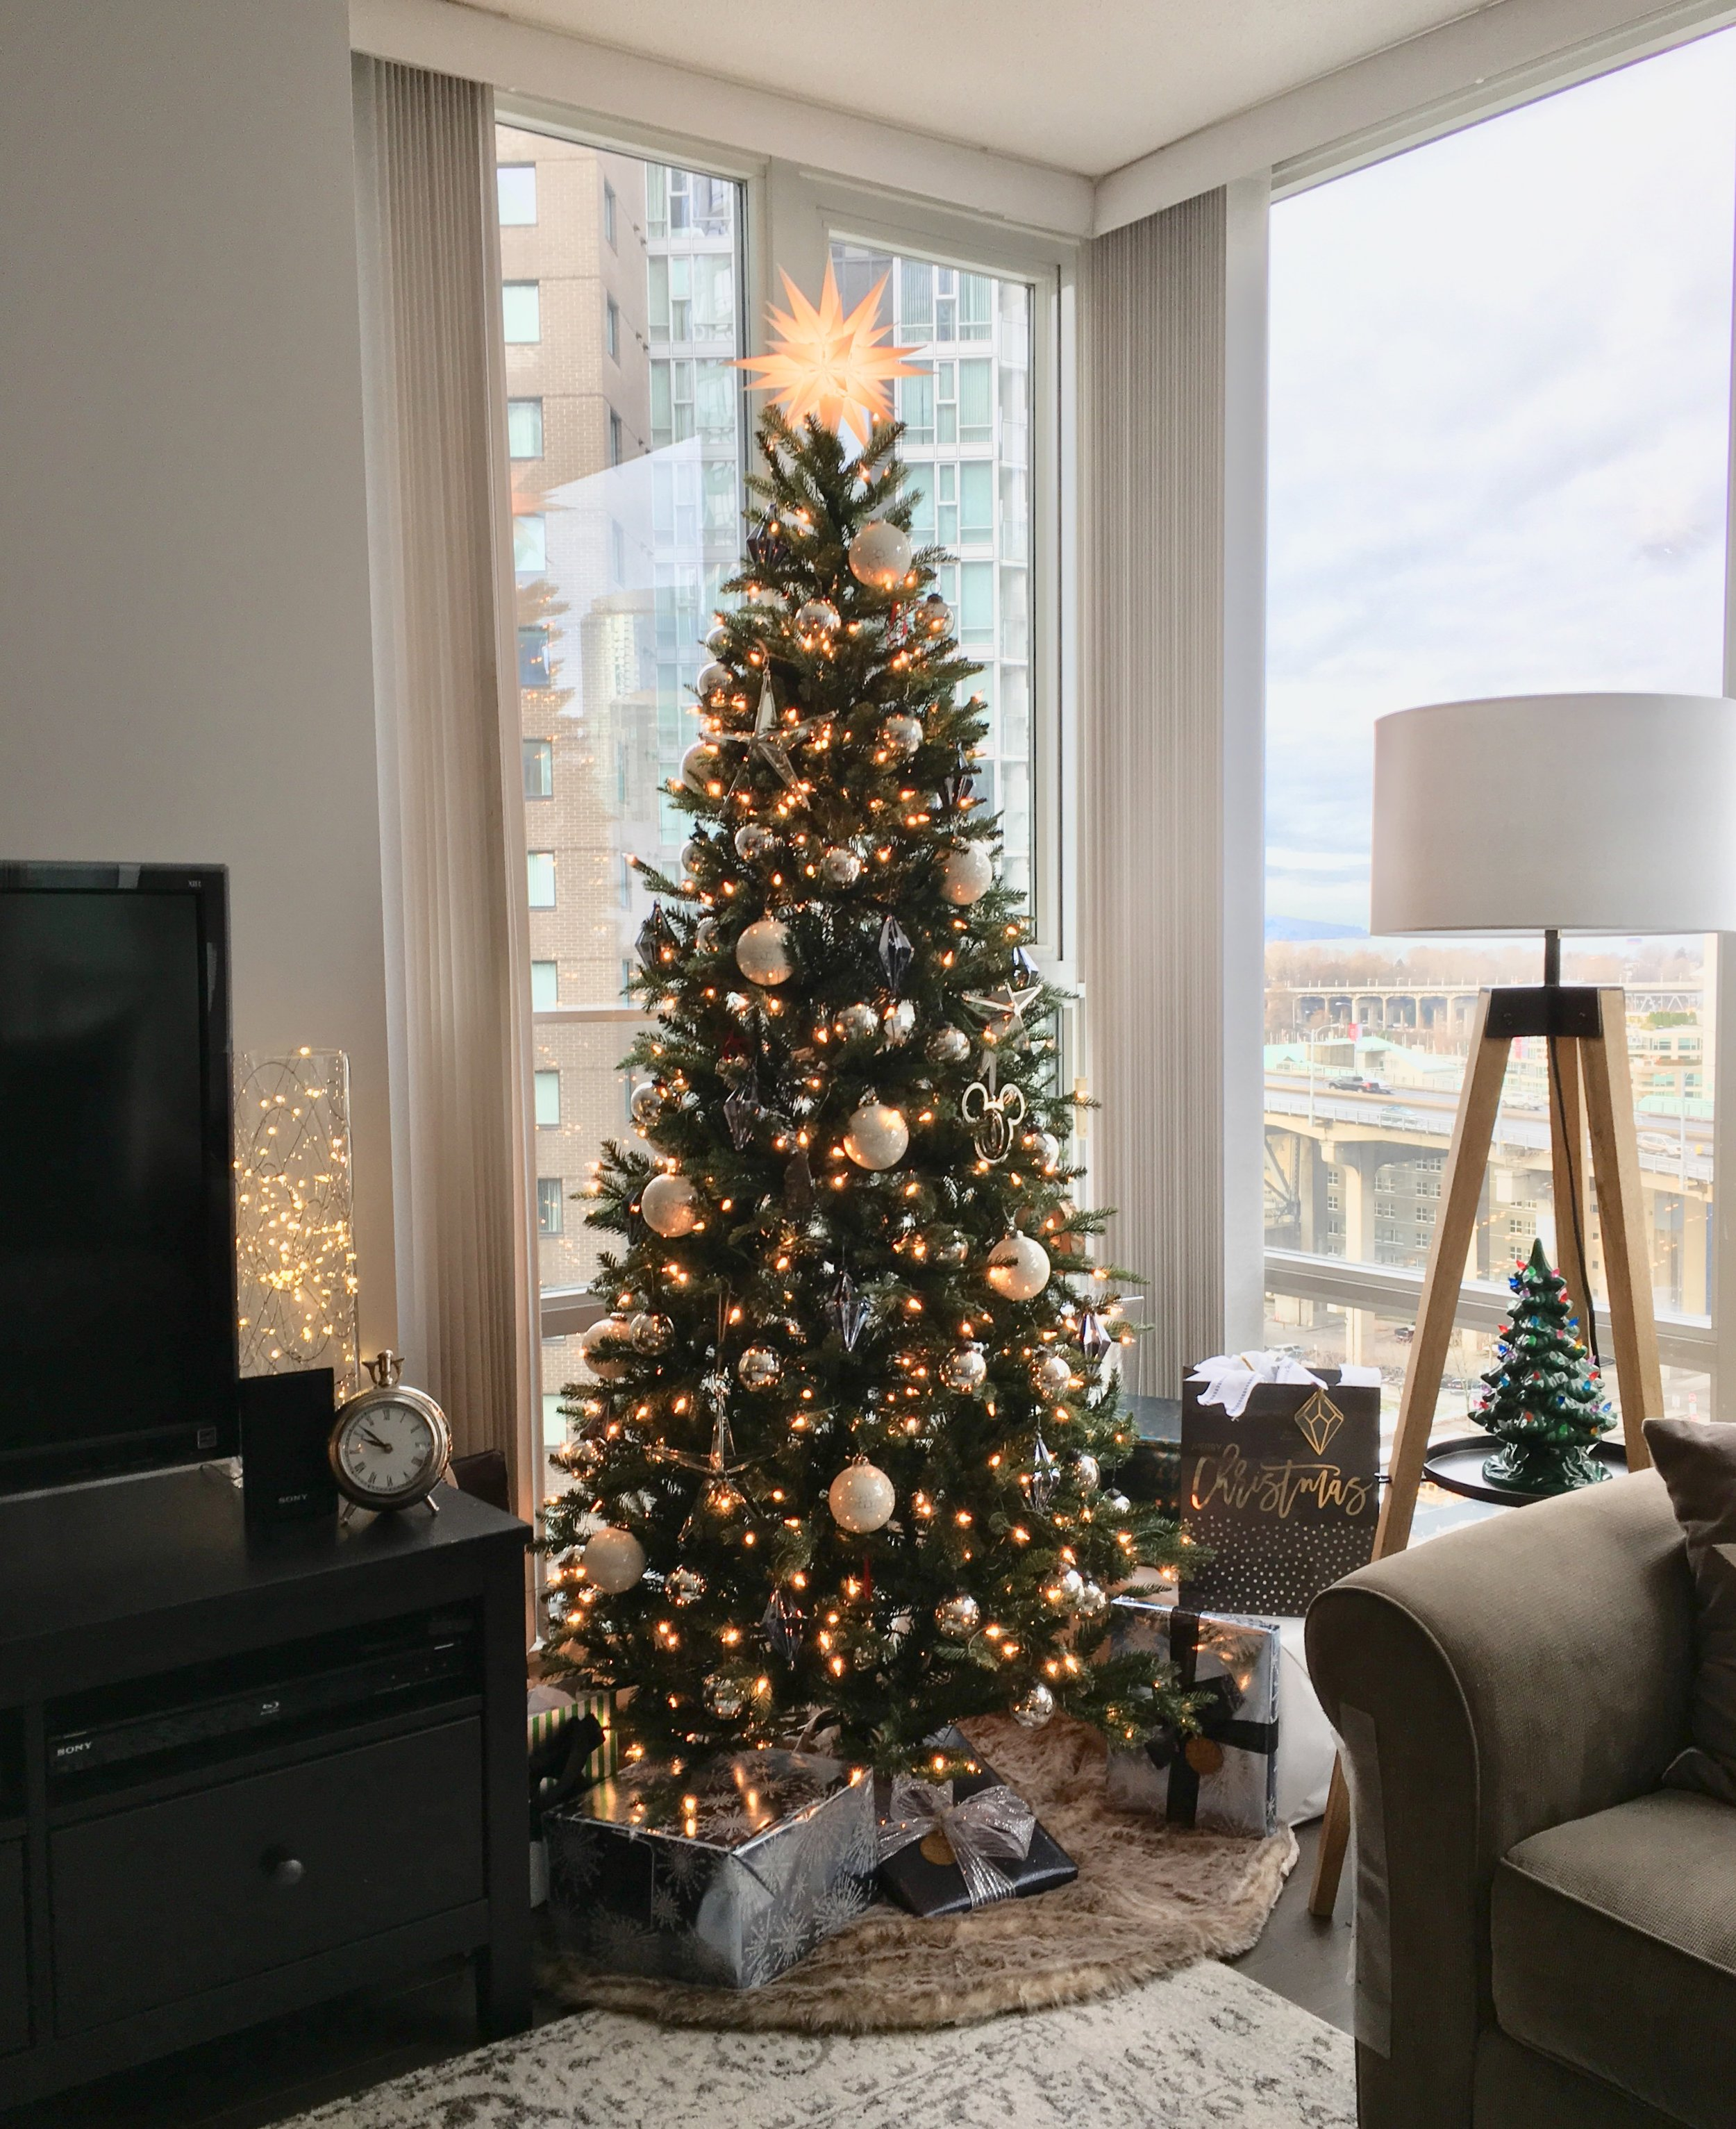 Our Christmas tree in our living room.